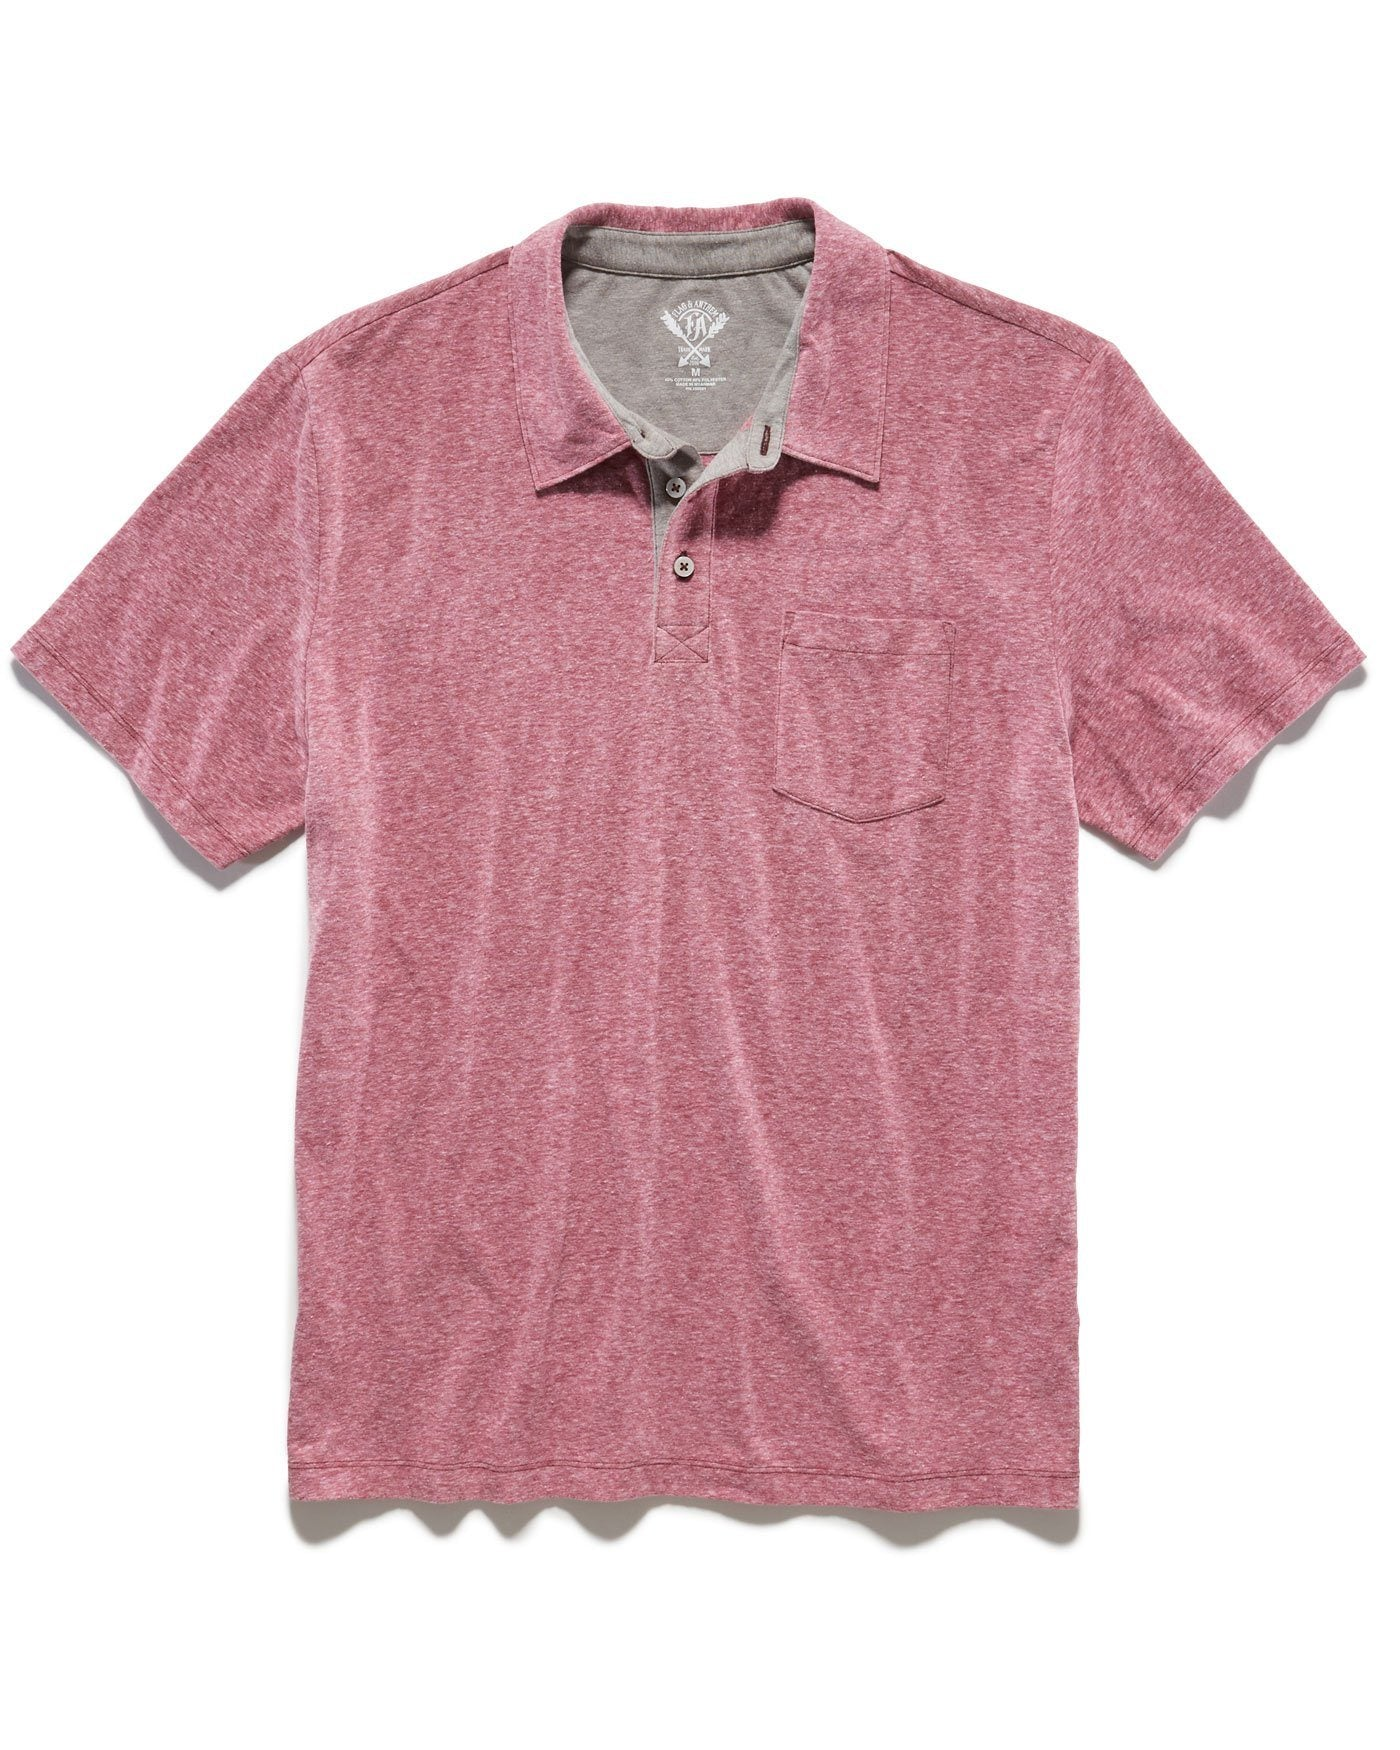 OSWEGO SNOW HEATHER POLO - BURGUNDY